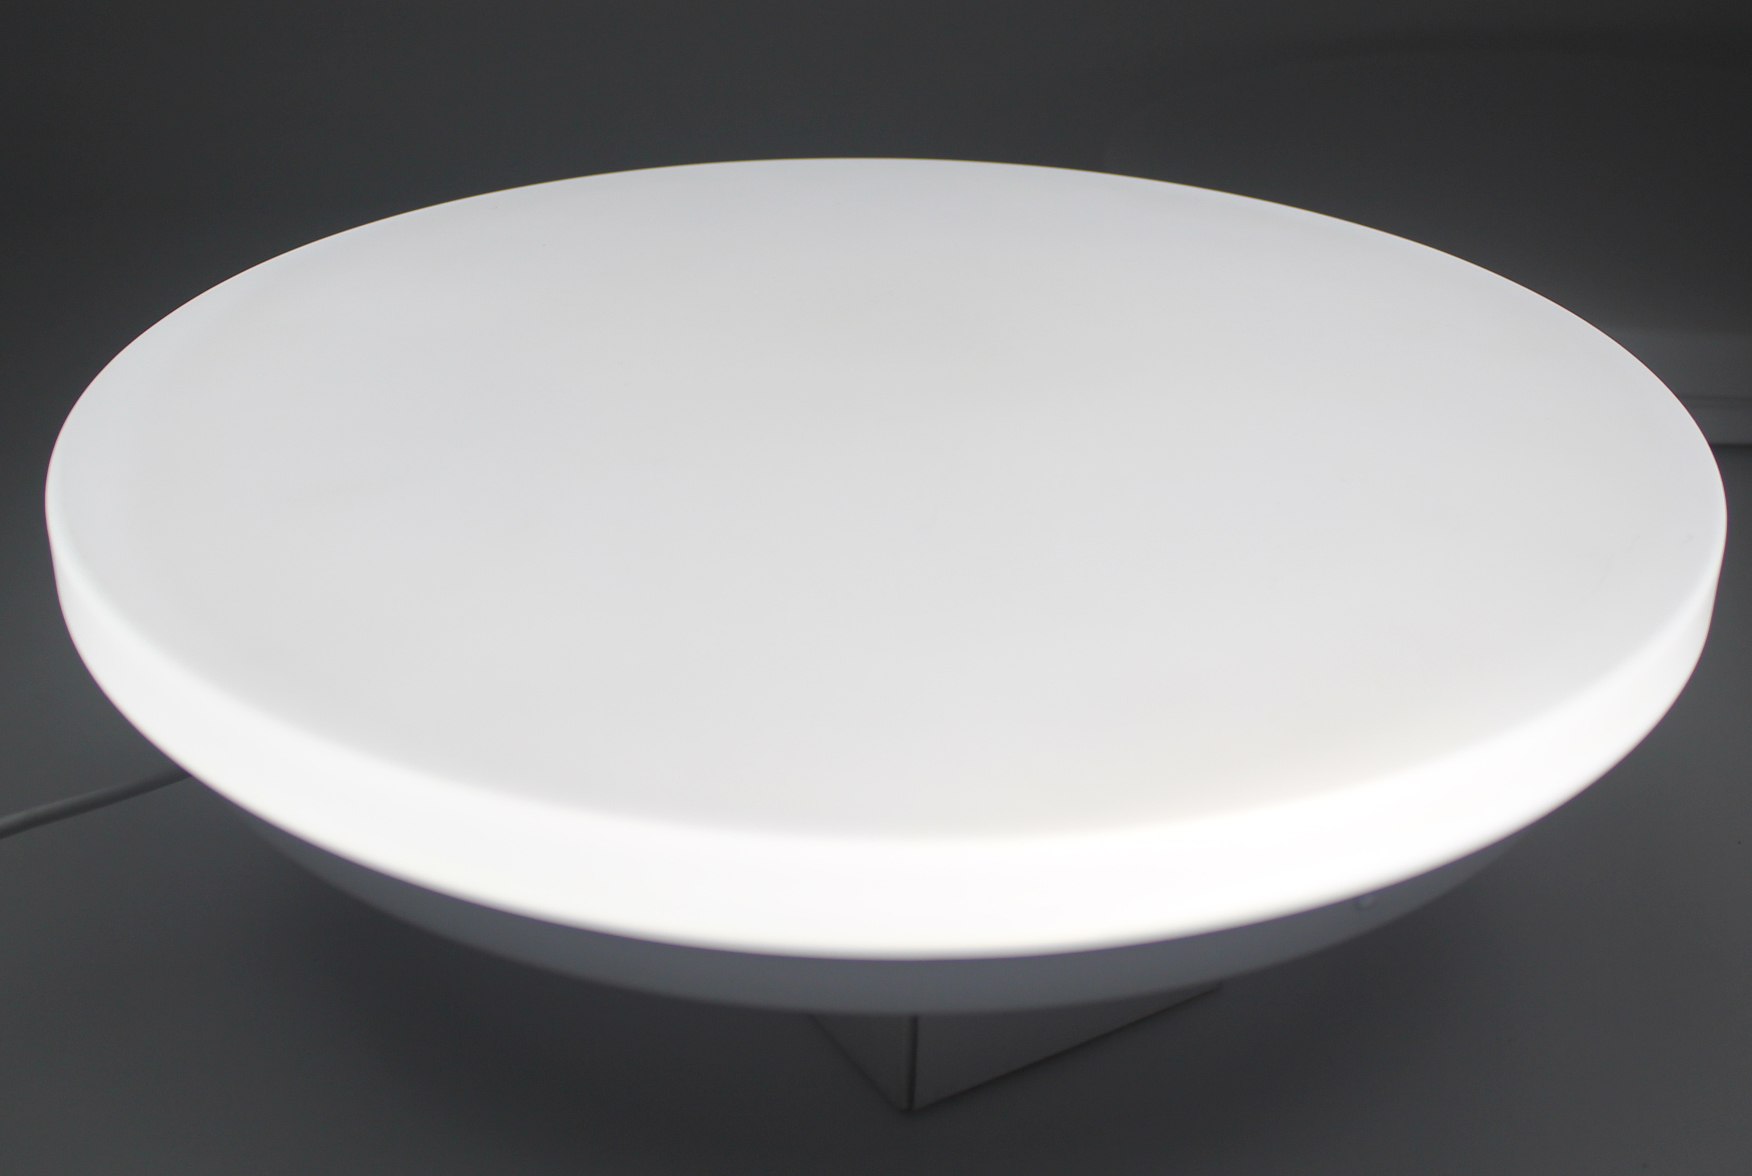 New!supper thin 5cm living room led light for home and living room,best quality no dark round led light fixture